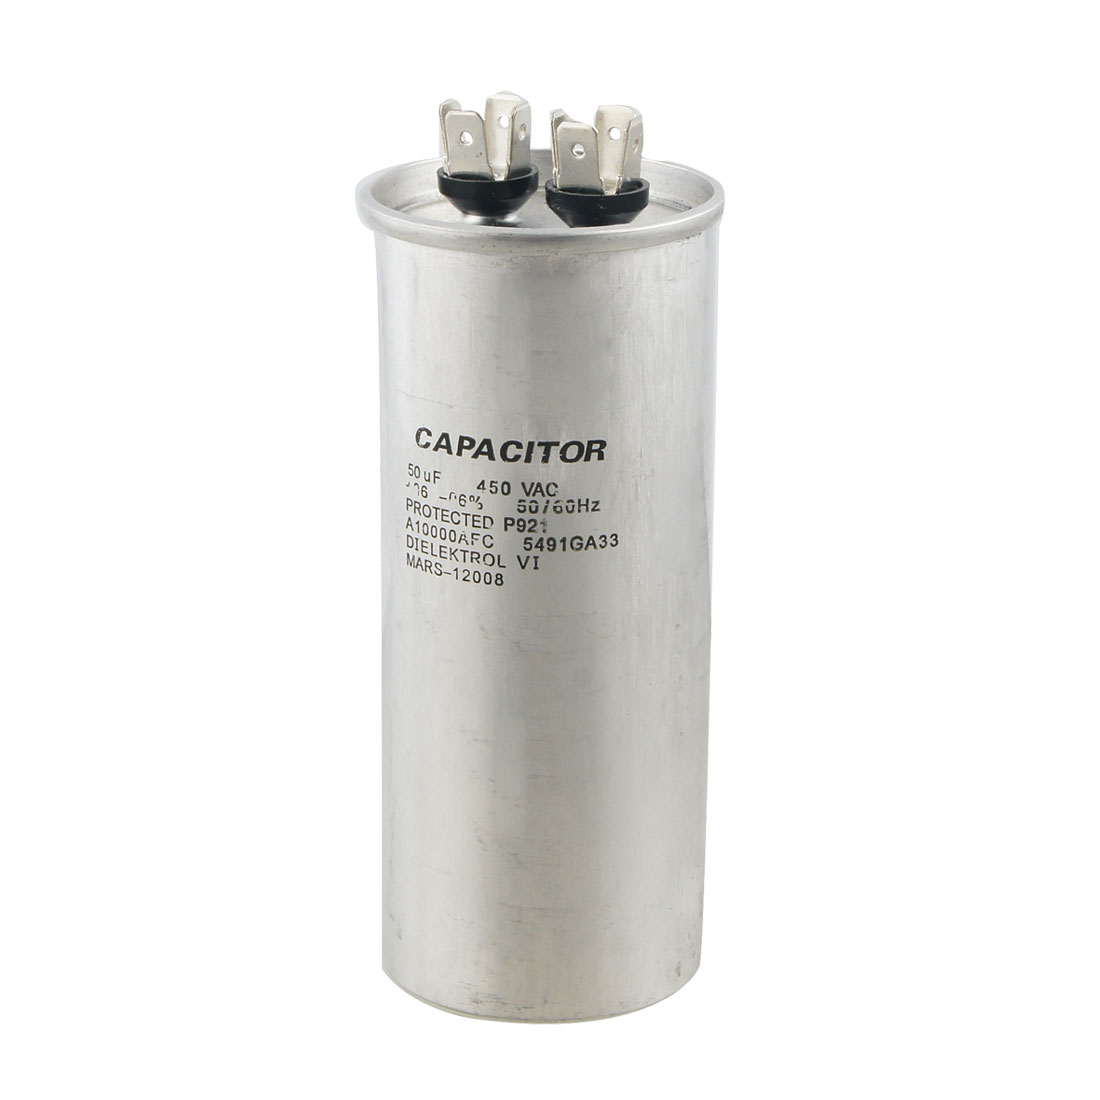 Air Conditioner 50uF 450V AC Polypropylene Film Motor Run Capacitor